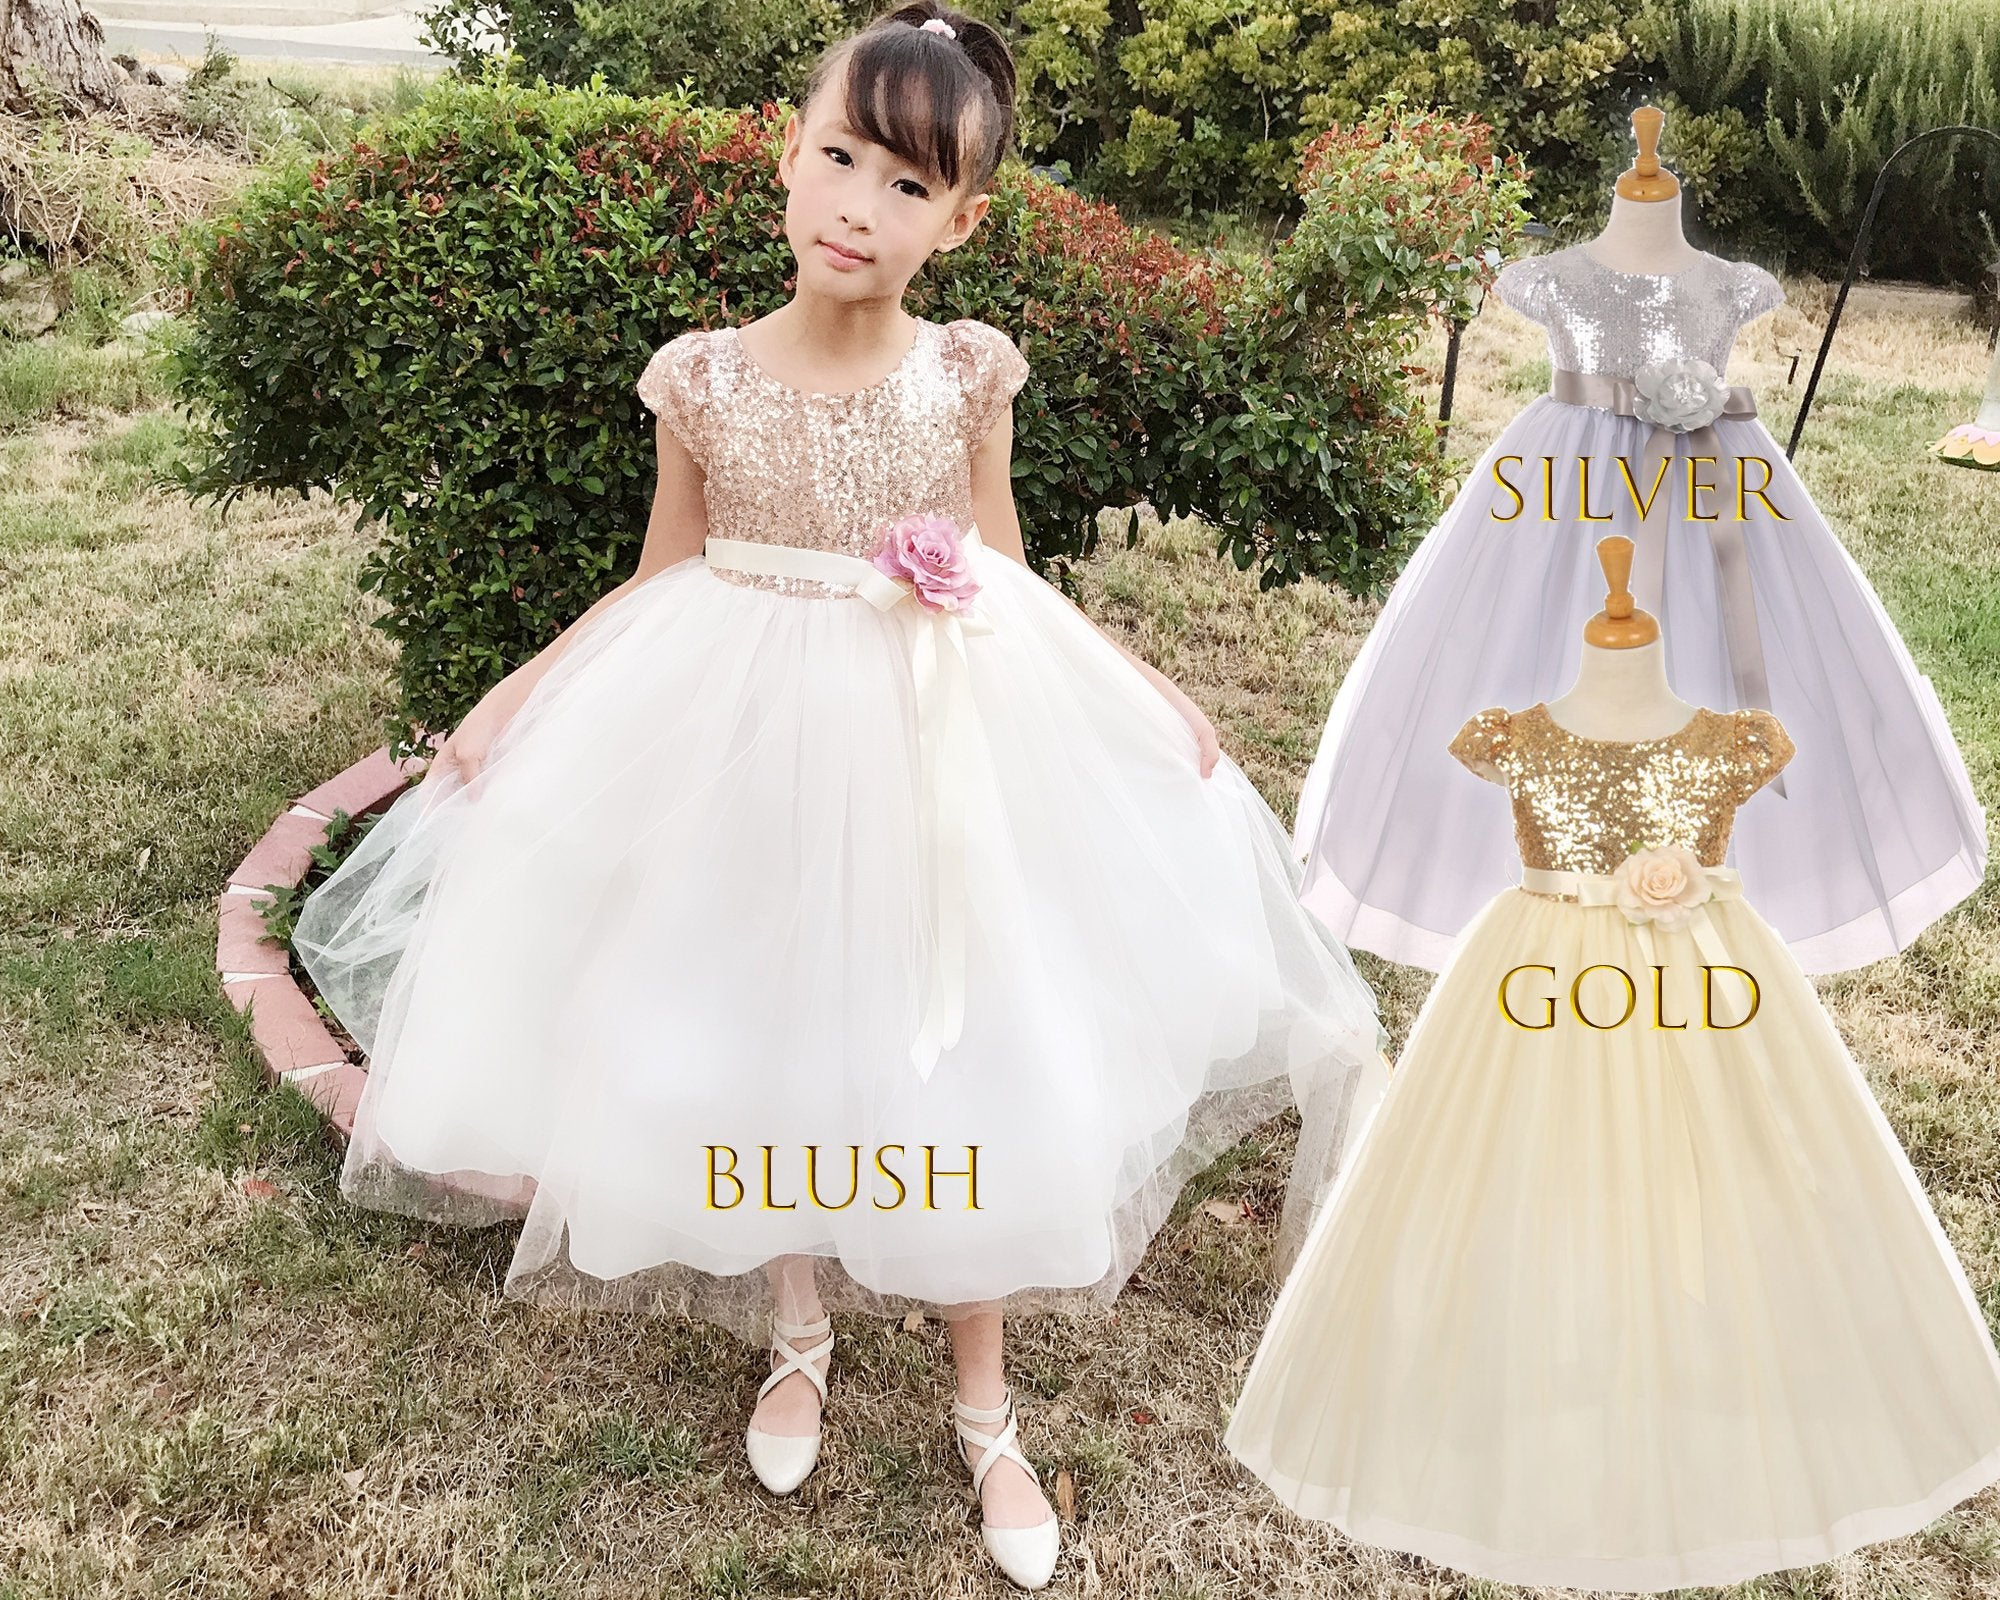 59a7c8ab Babies to Big Girls Sparkle Sequins Tulle Sleeve Tea Length Dress, Wedding  Flower Girl,